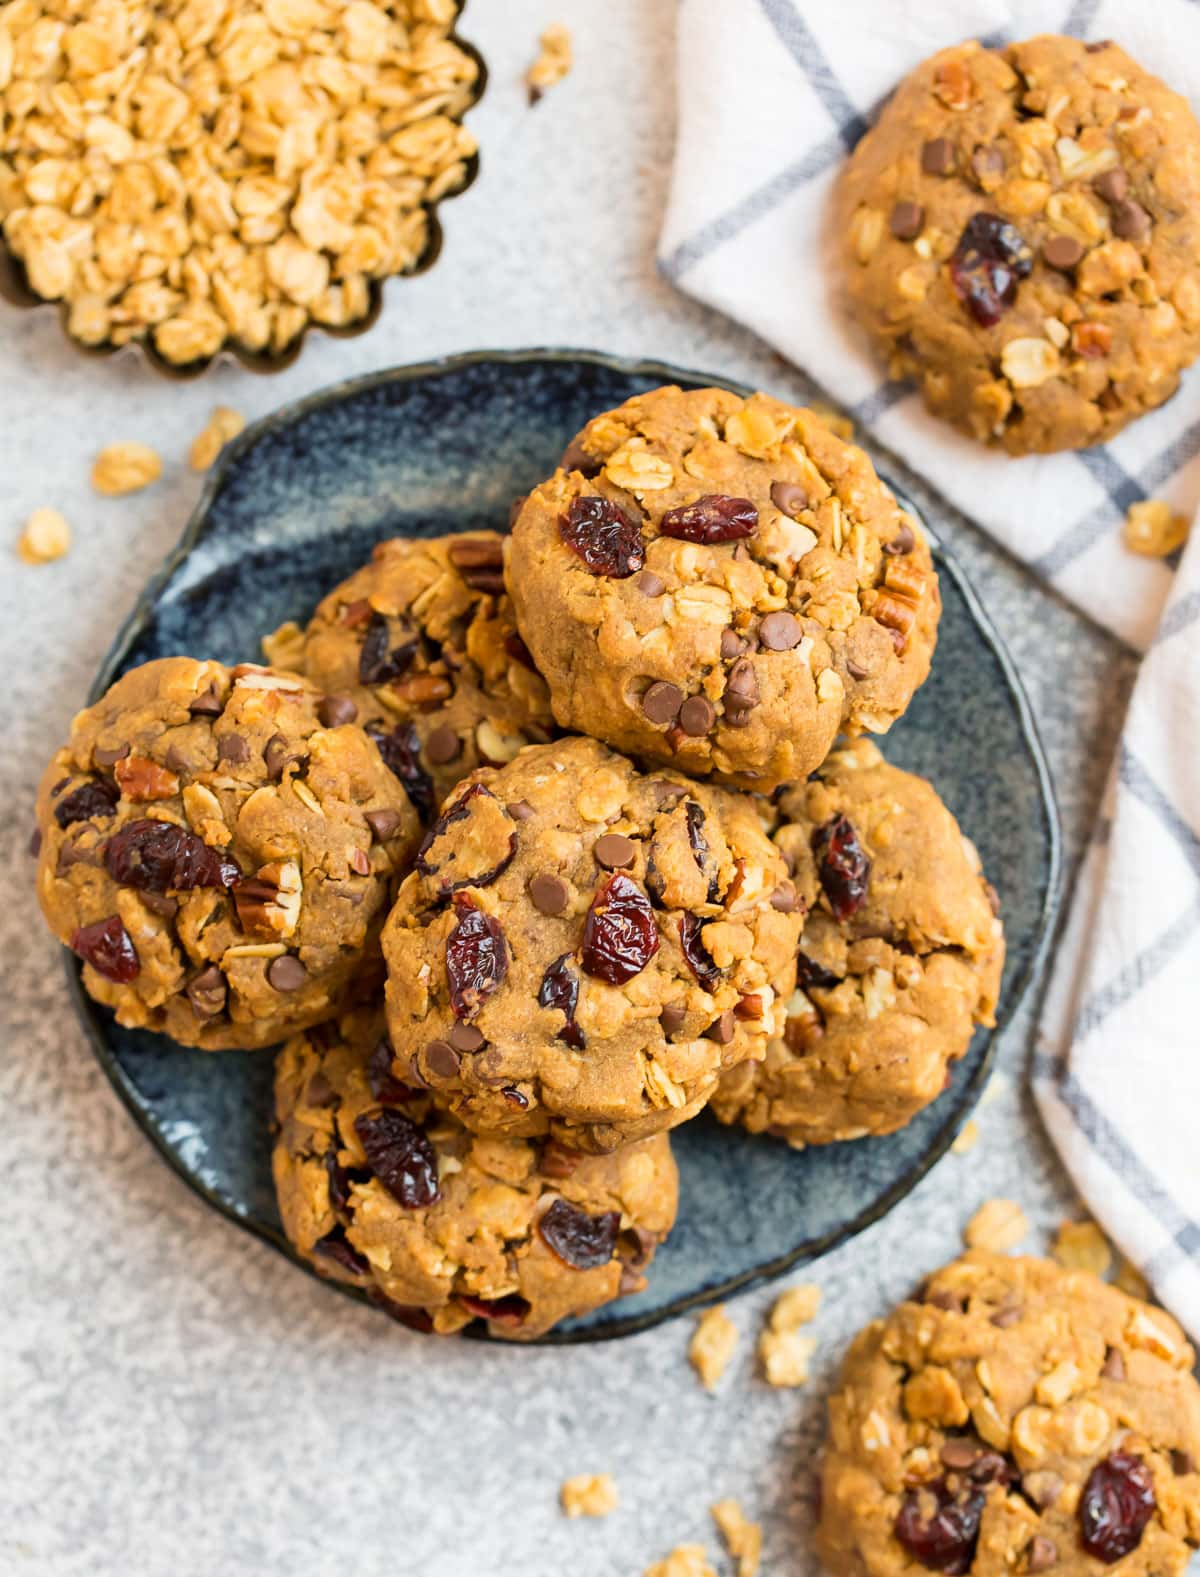 Granola cookies on a plate